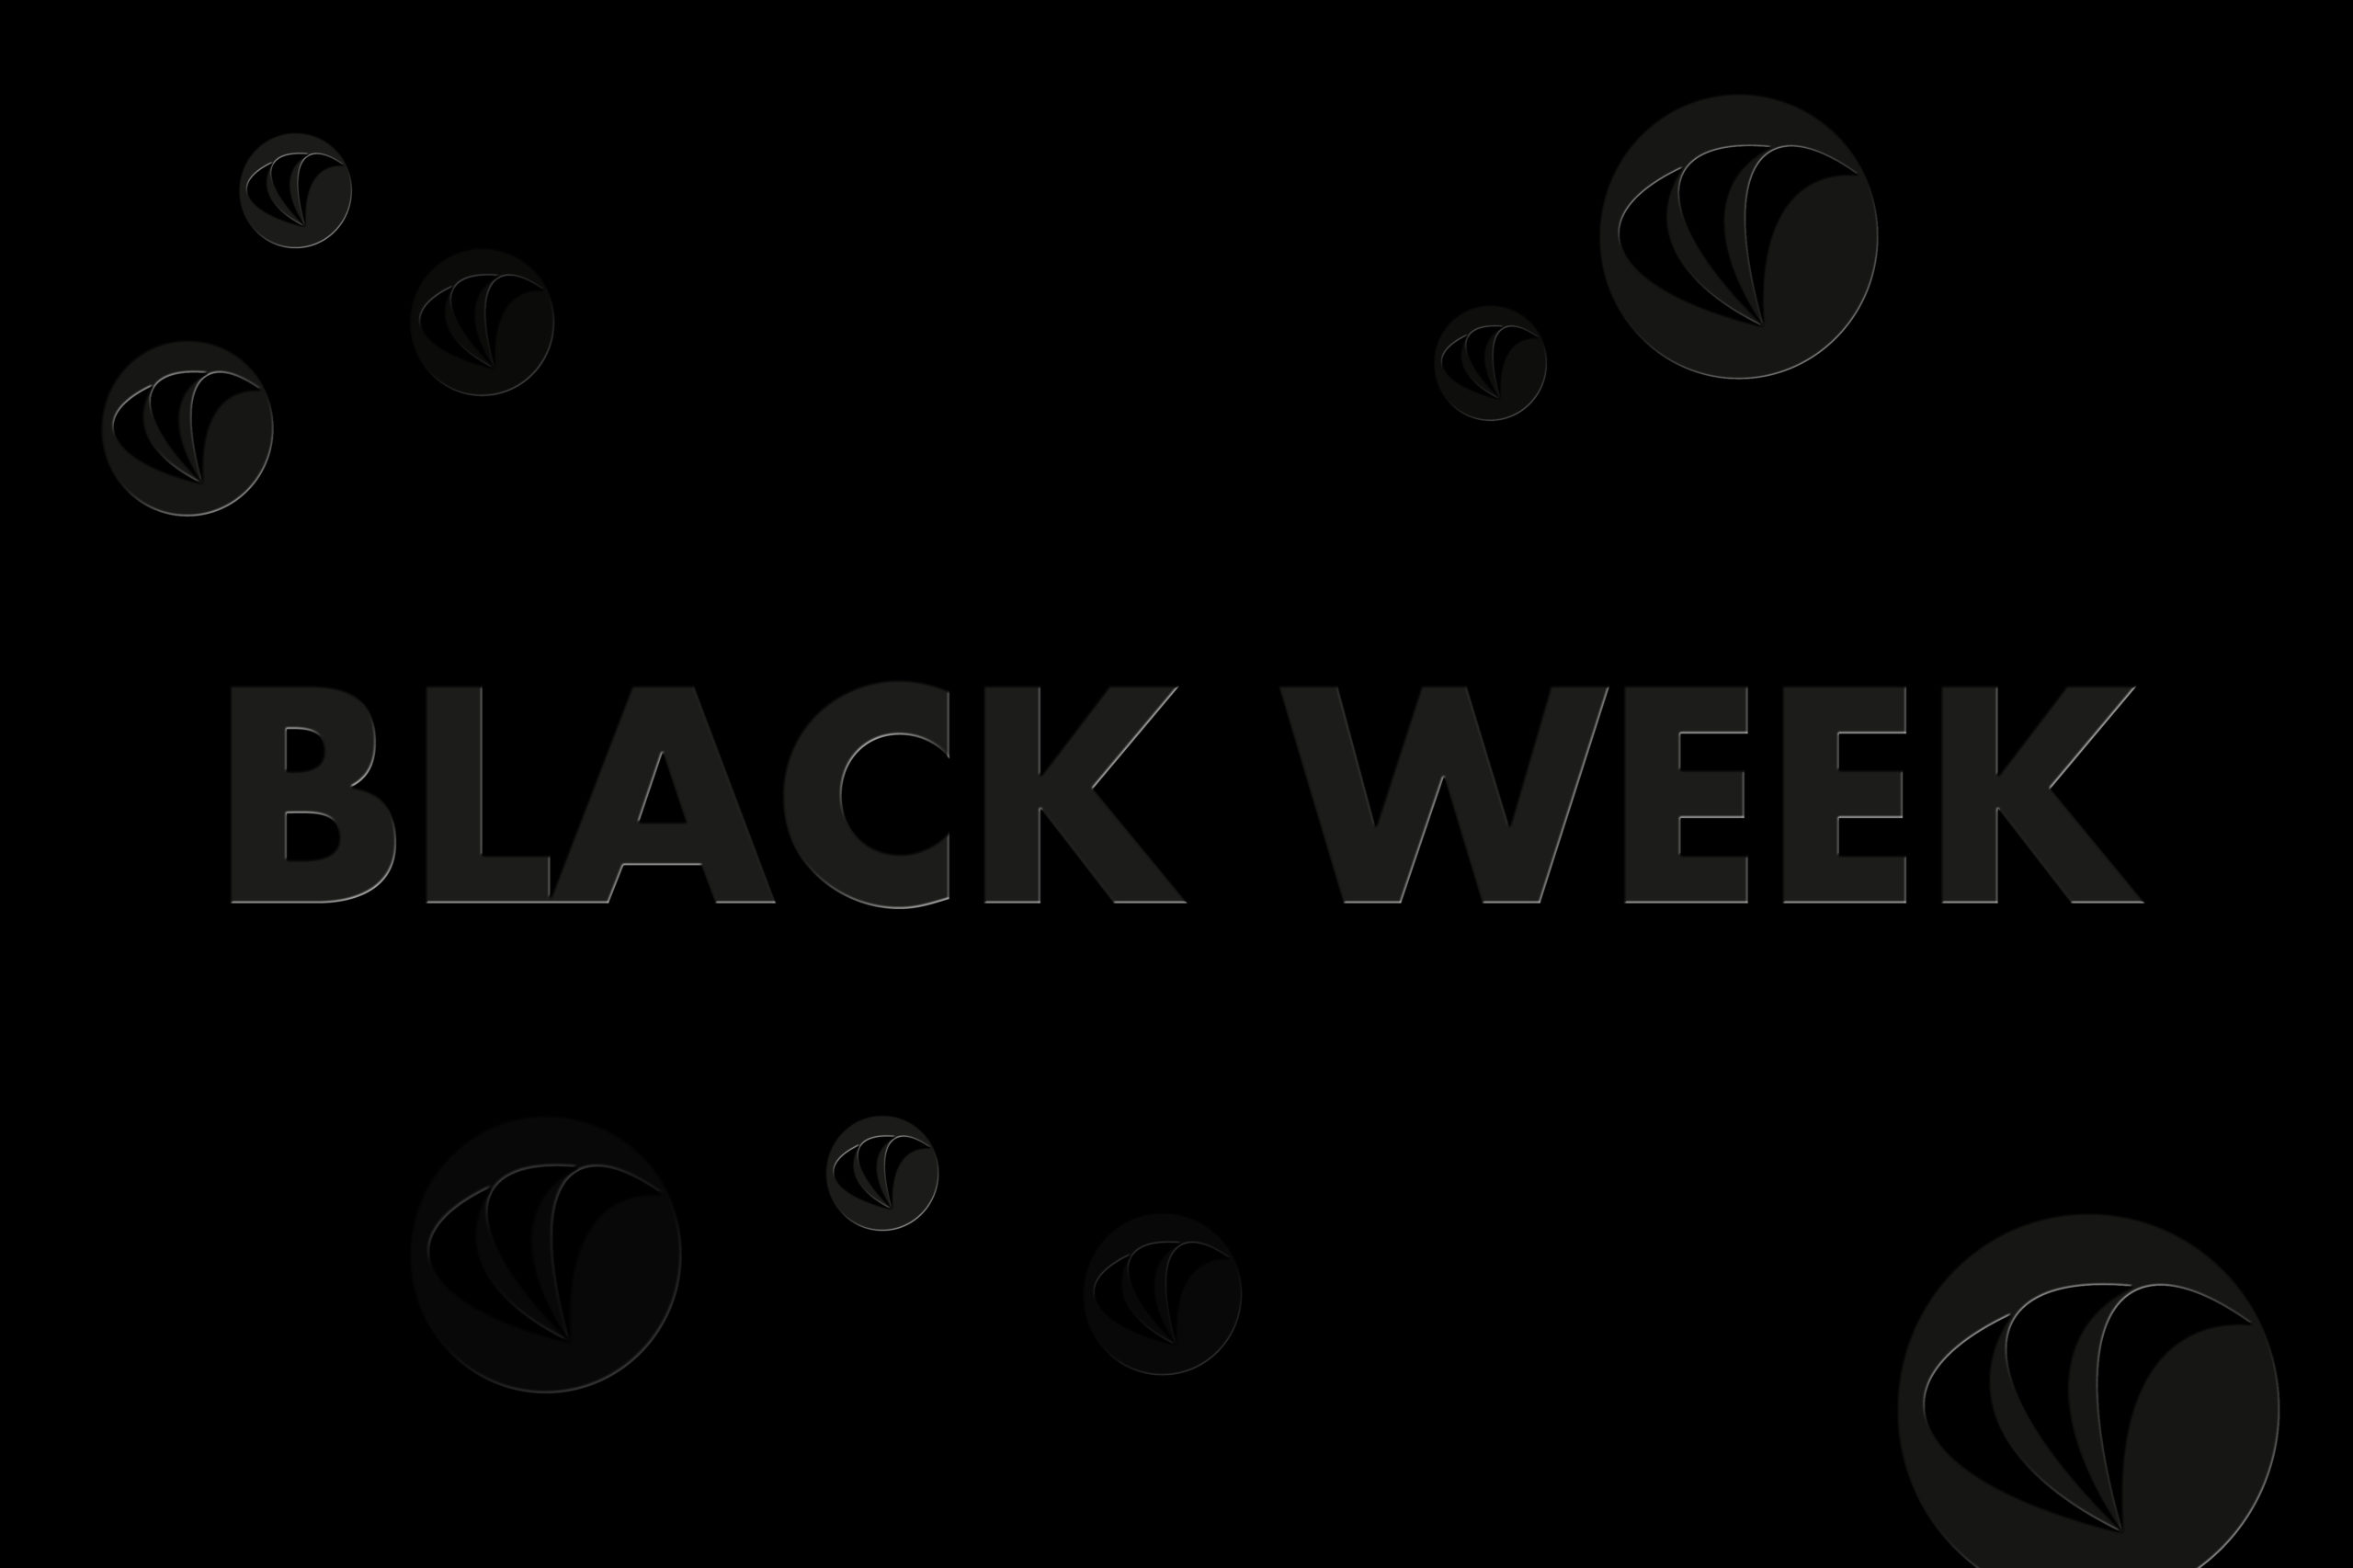 Black Week Pasaatissa